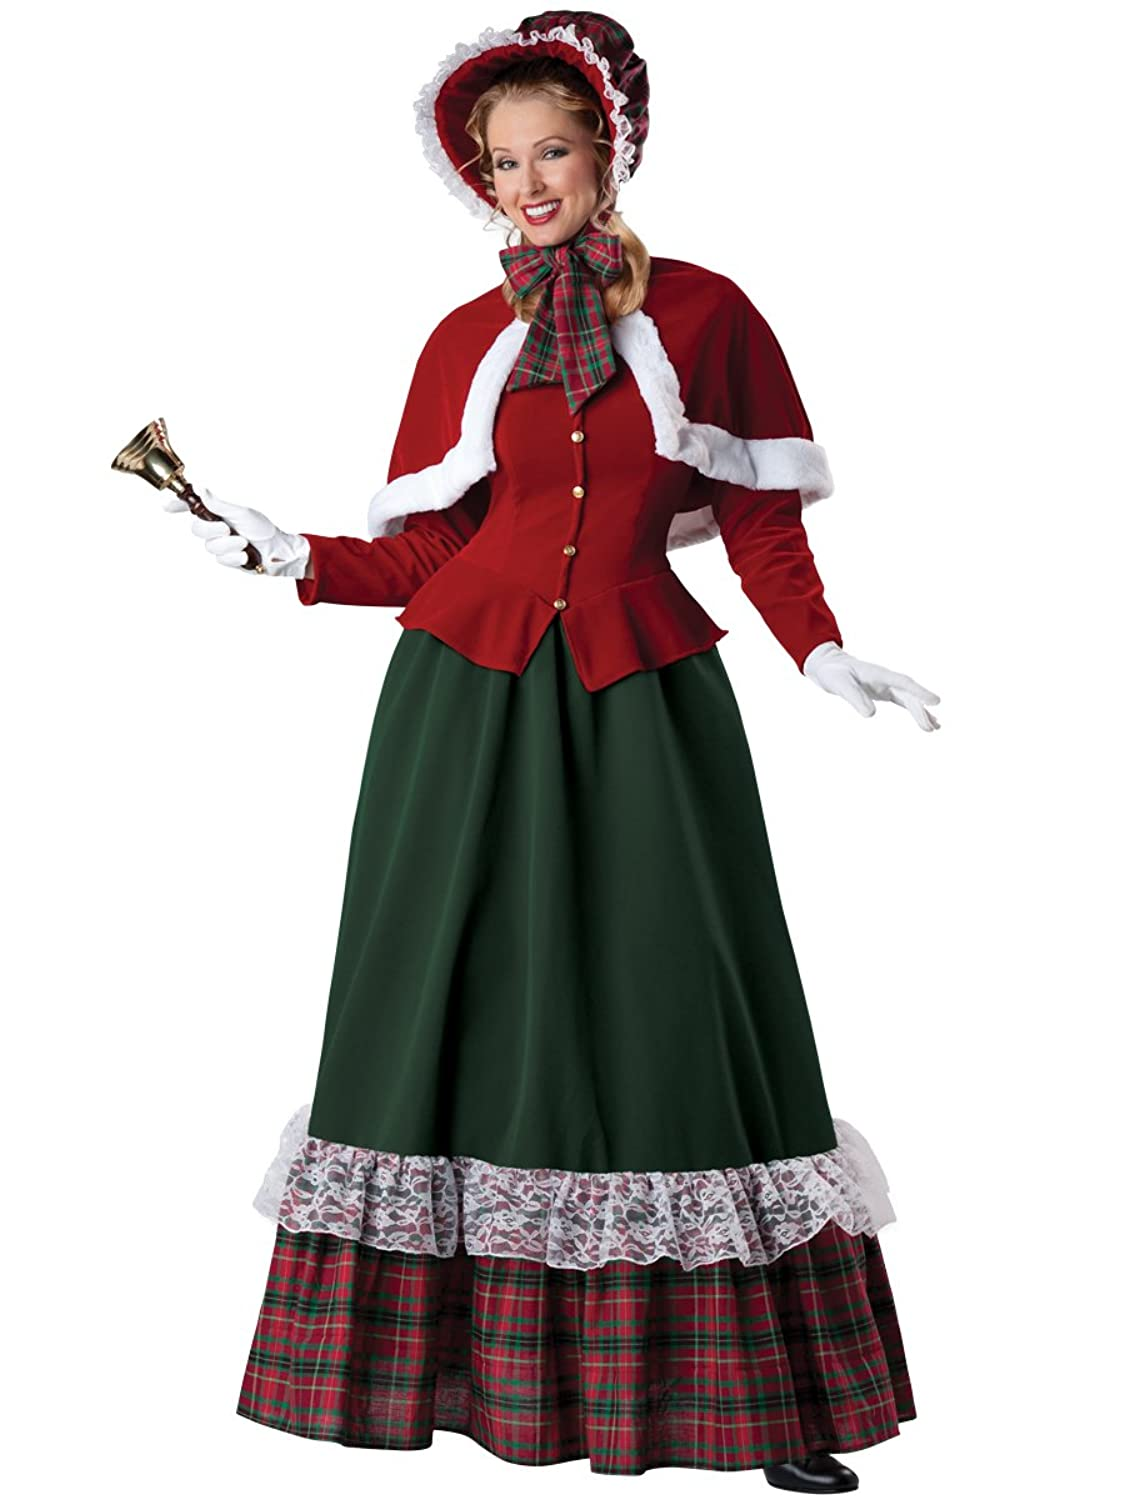 TitanicStyleDressesforSale Yuletide Lady Holiday Costume  AT vintagedancer.com